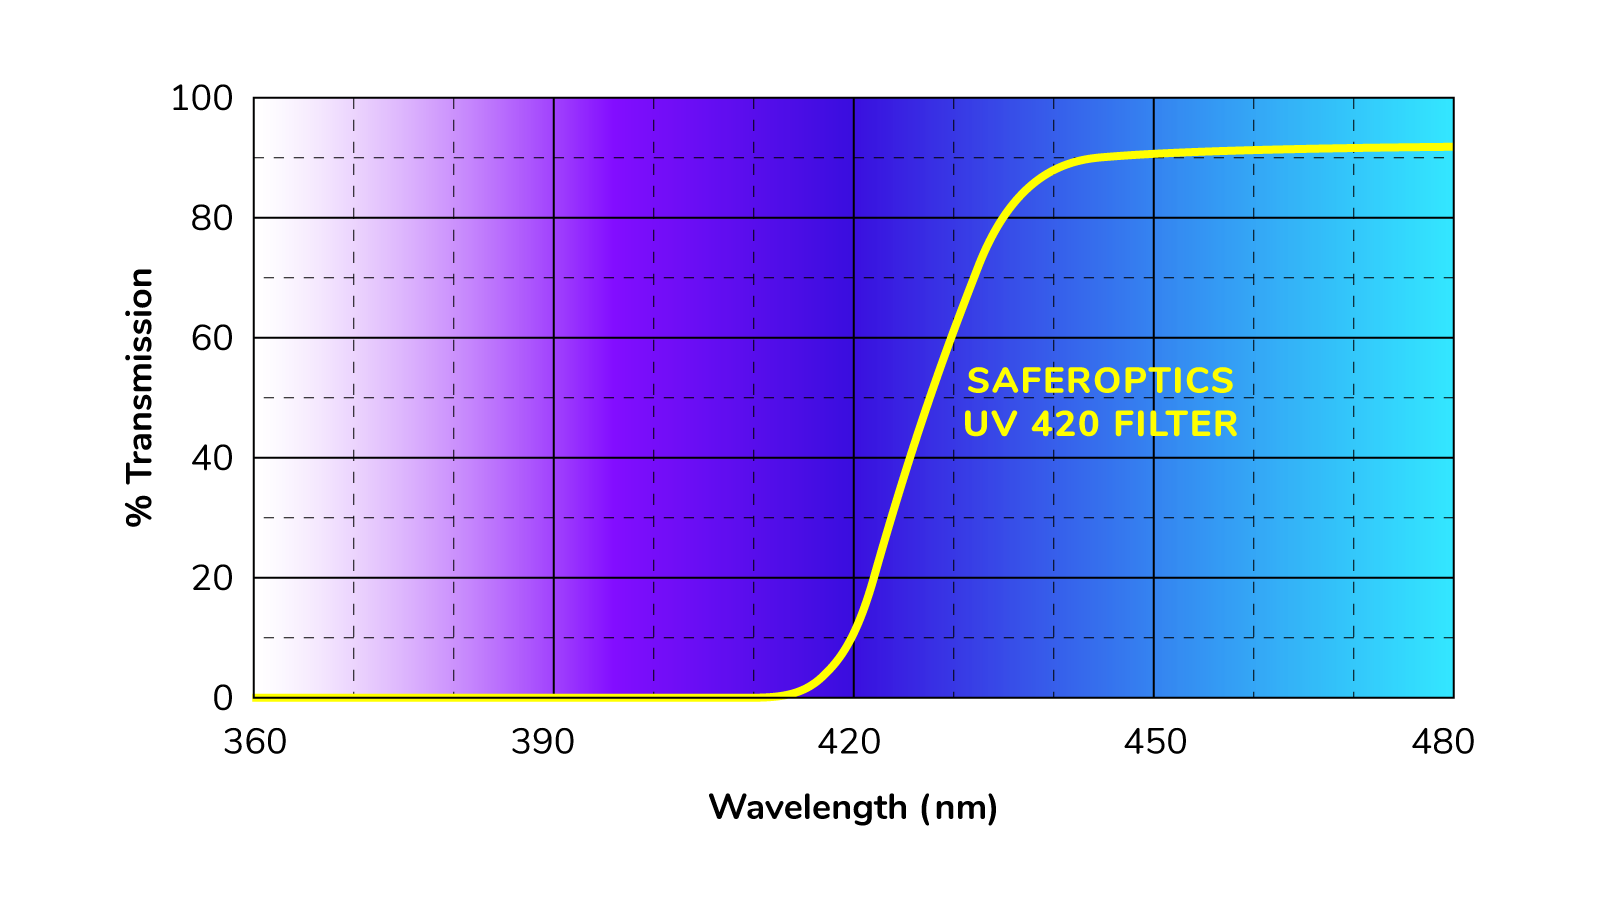 UV 420 blue light filter wavelength chart